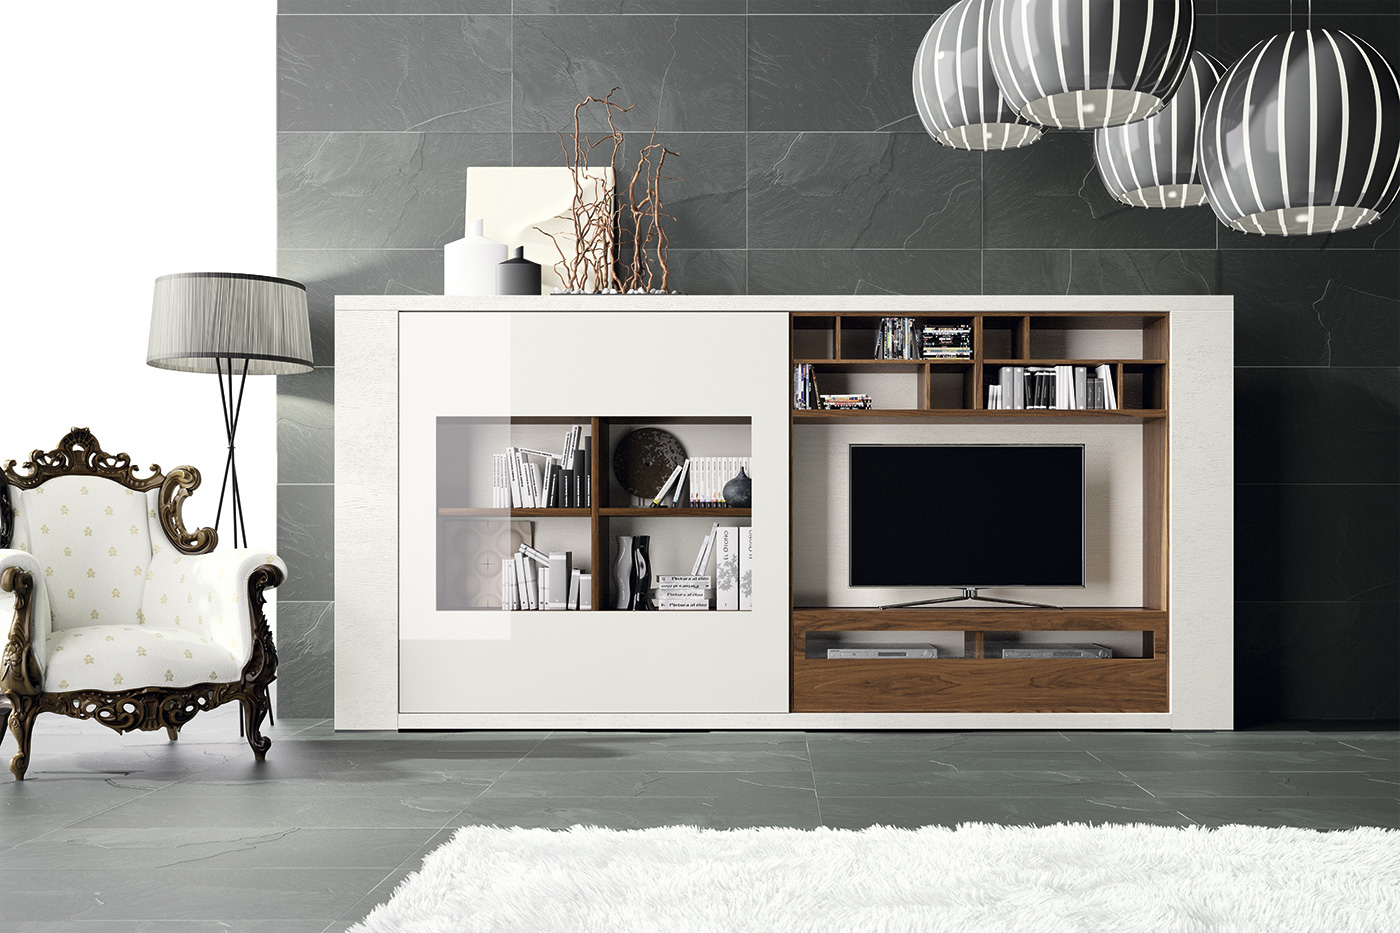 Salon Arabe Barato Mueble De Tv Compacto Exclusive En Portobellostreet Es